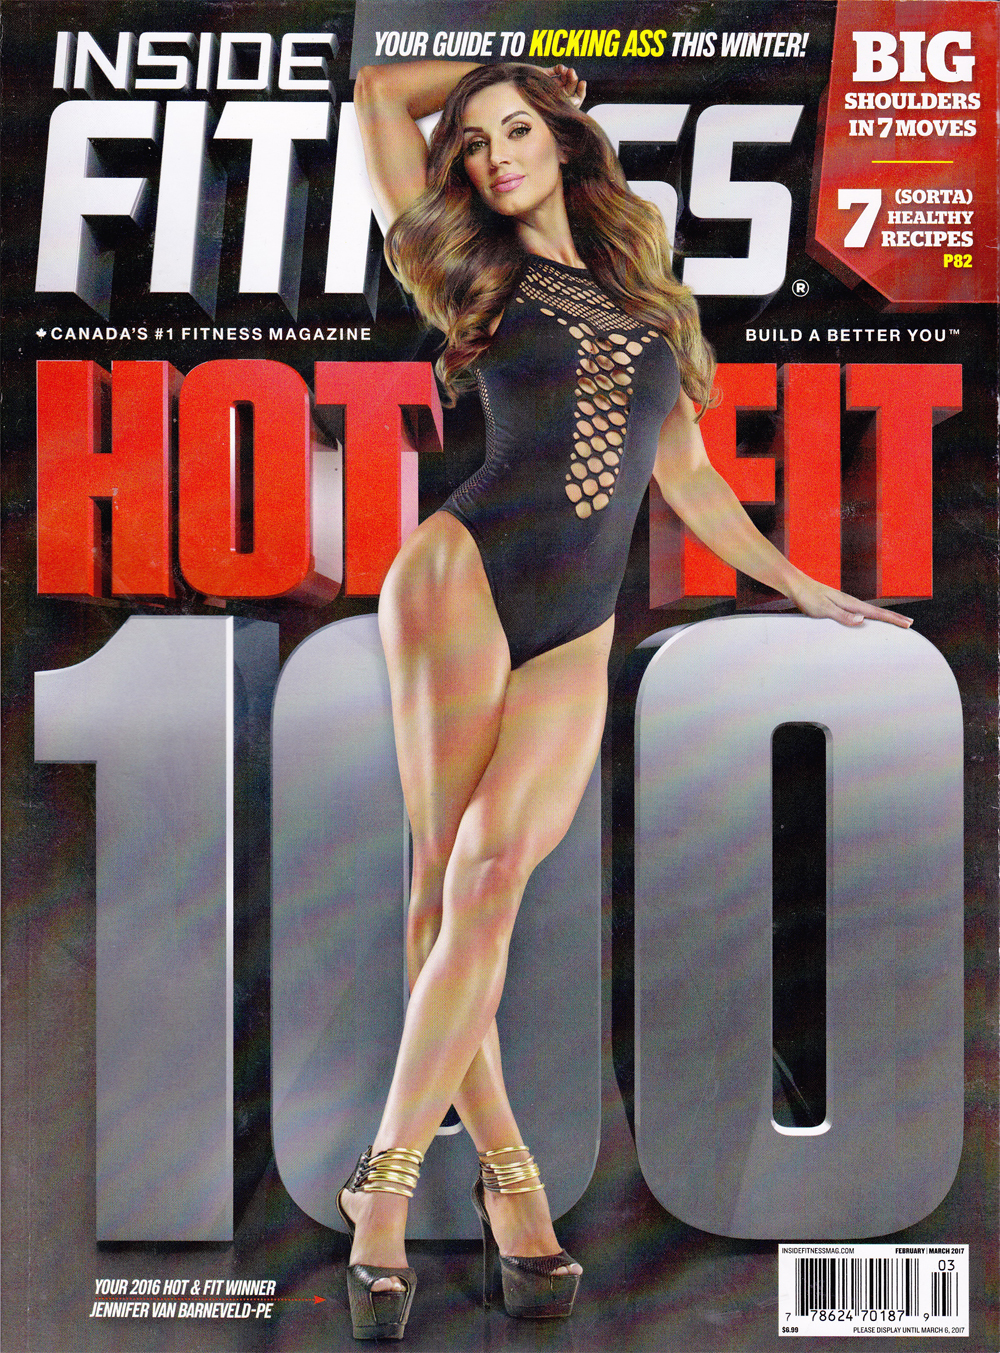 Inside Fitness Magazine, February 2017